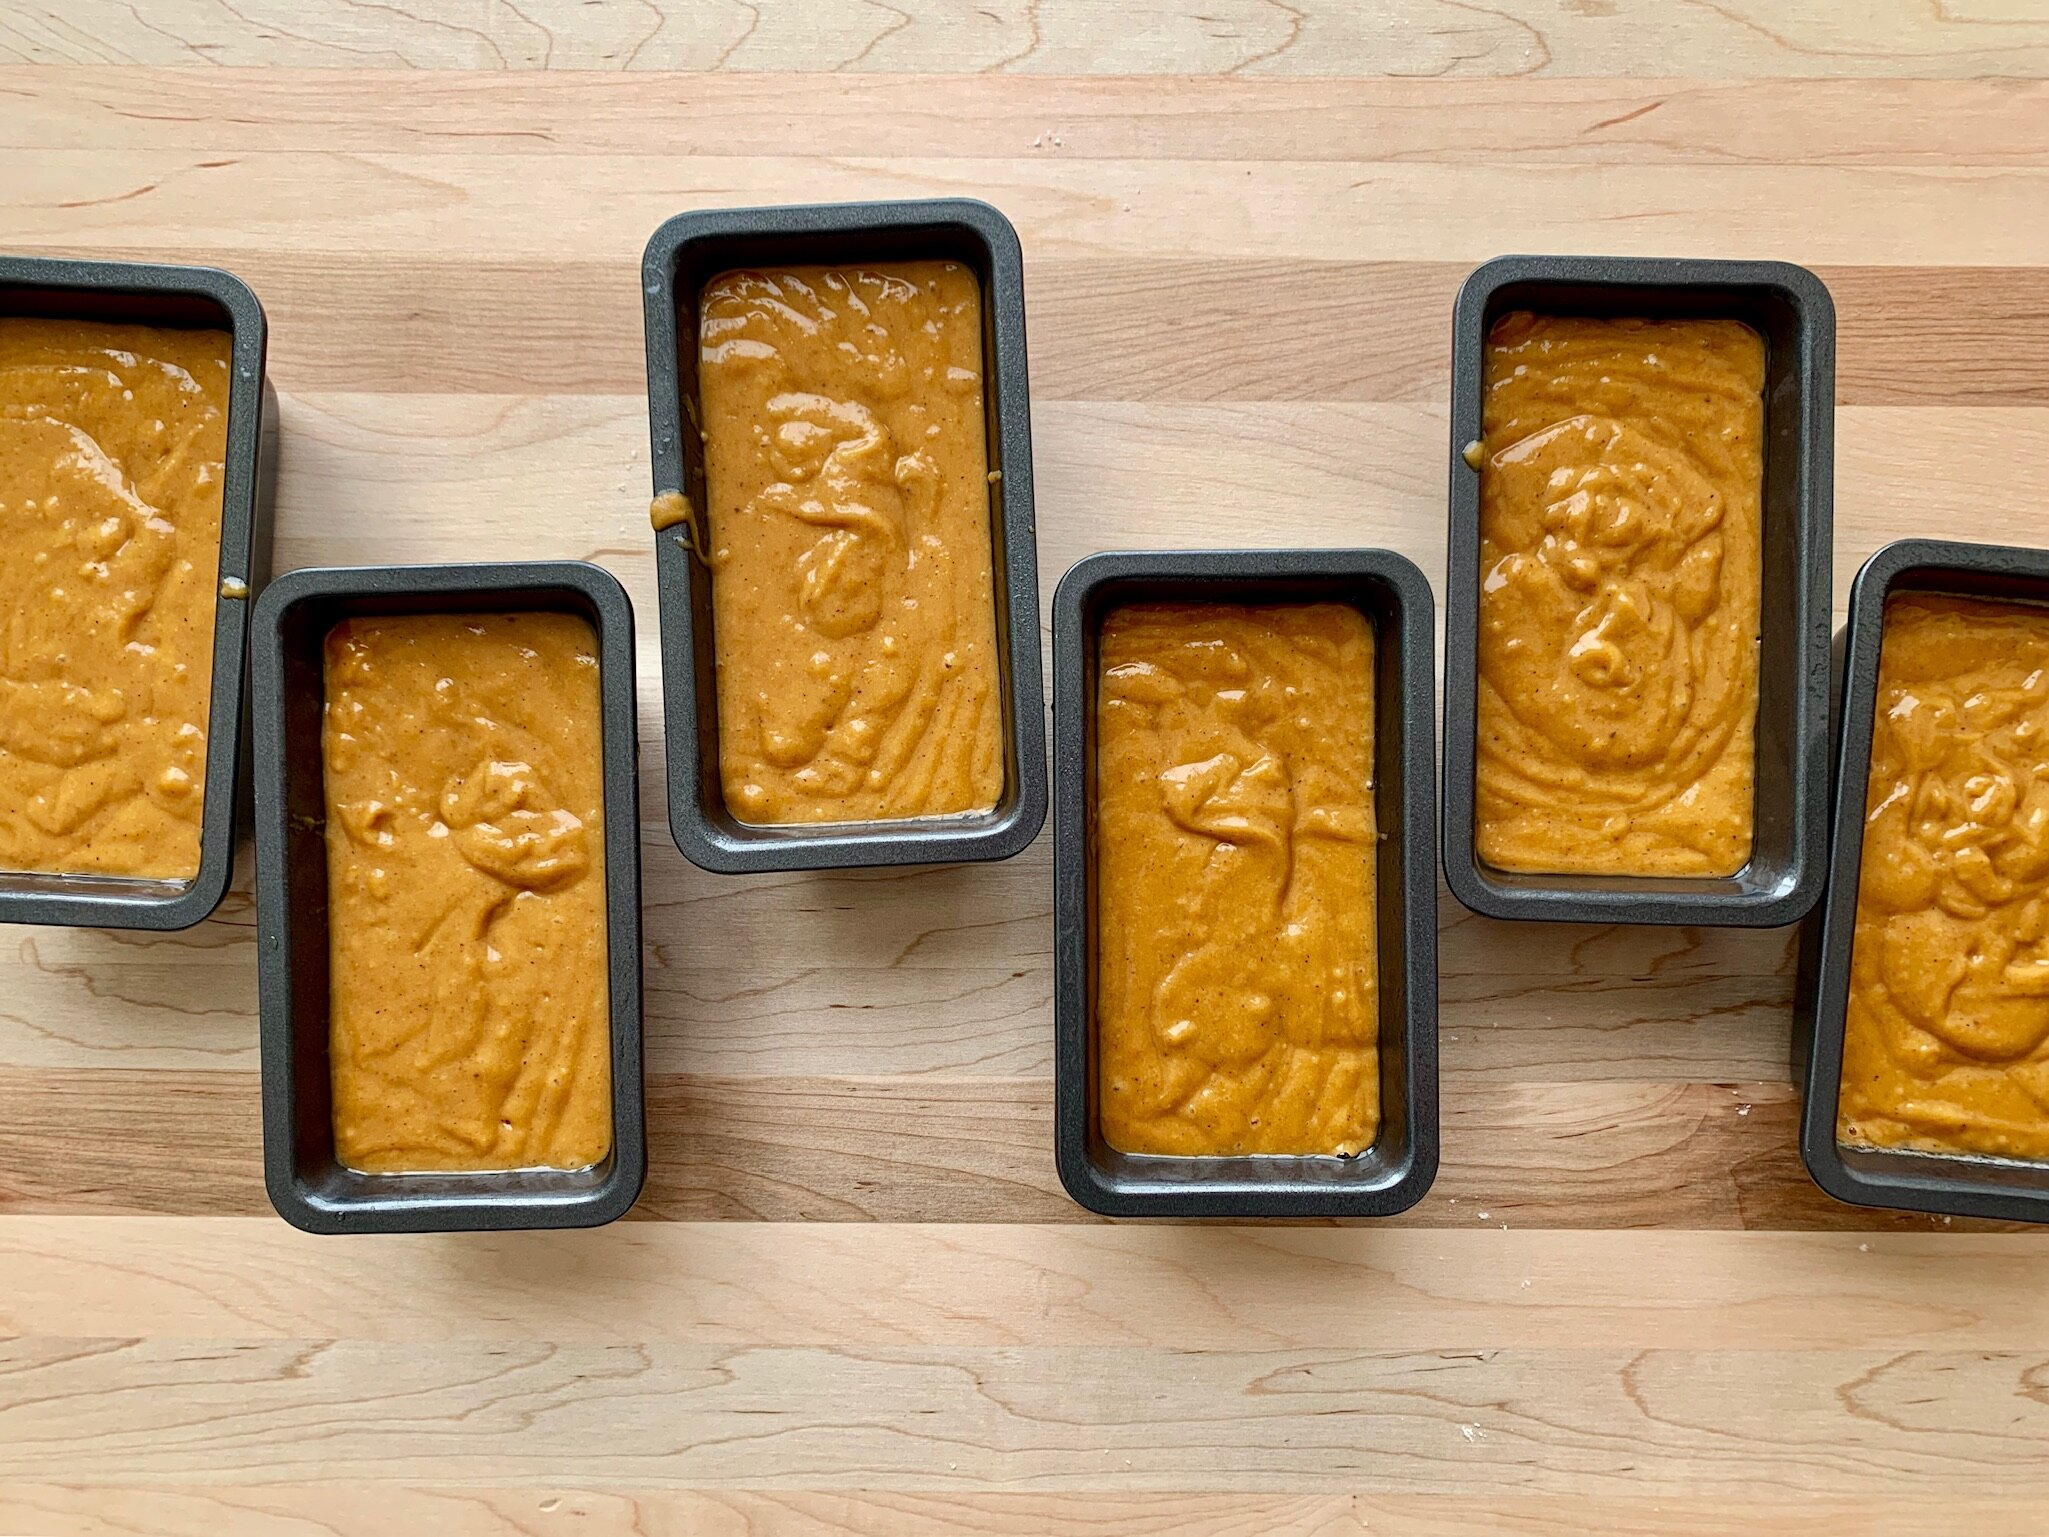 6. Add batter to prepared pans. Bake approximately 40-45 minutes for mini-loaf pans (50-55 minutes for 7x3 pans, 60-65 minutes for 9x5 loaf pans) or until a toothpick inserted in center of loaf comes out clean. -